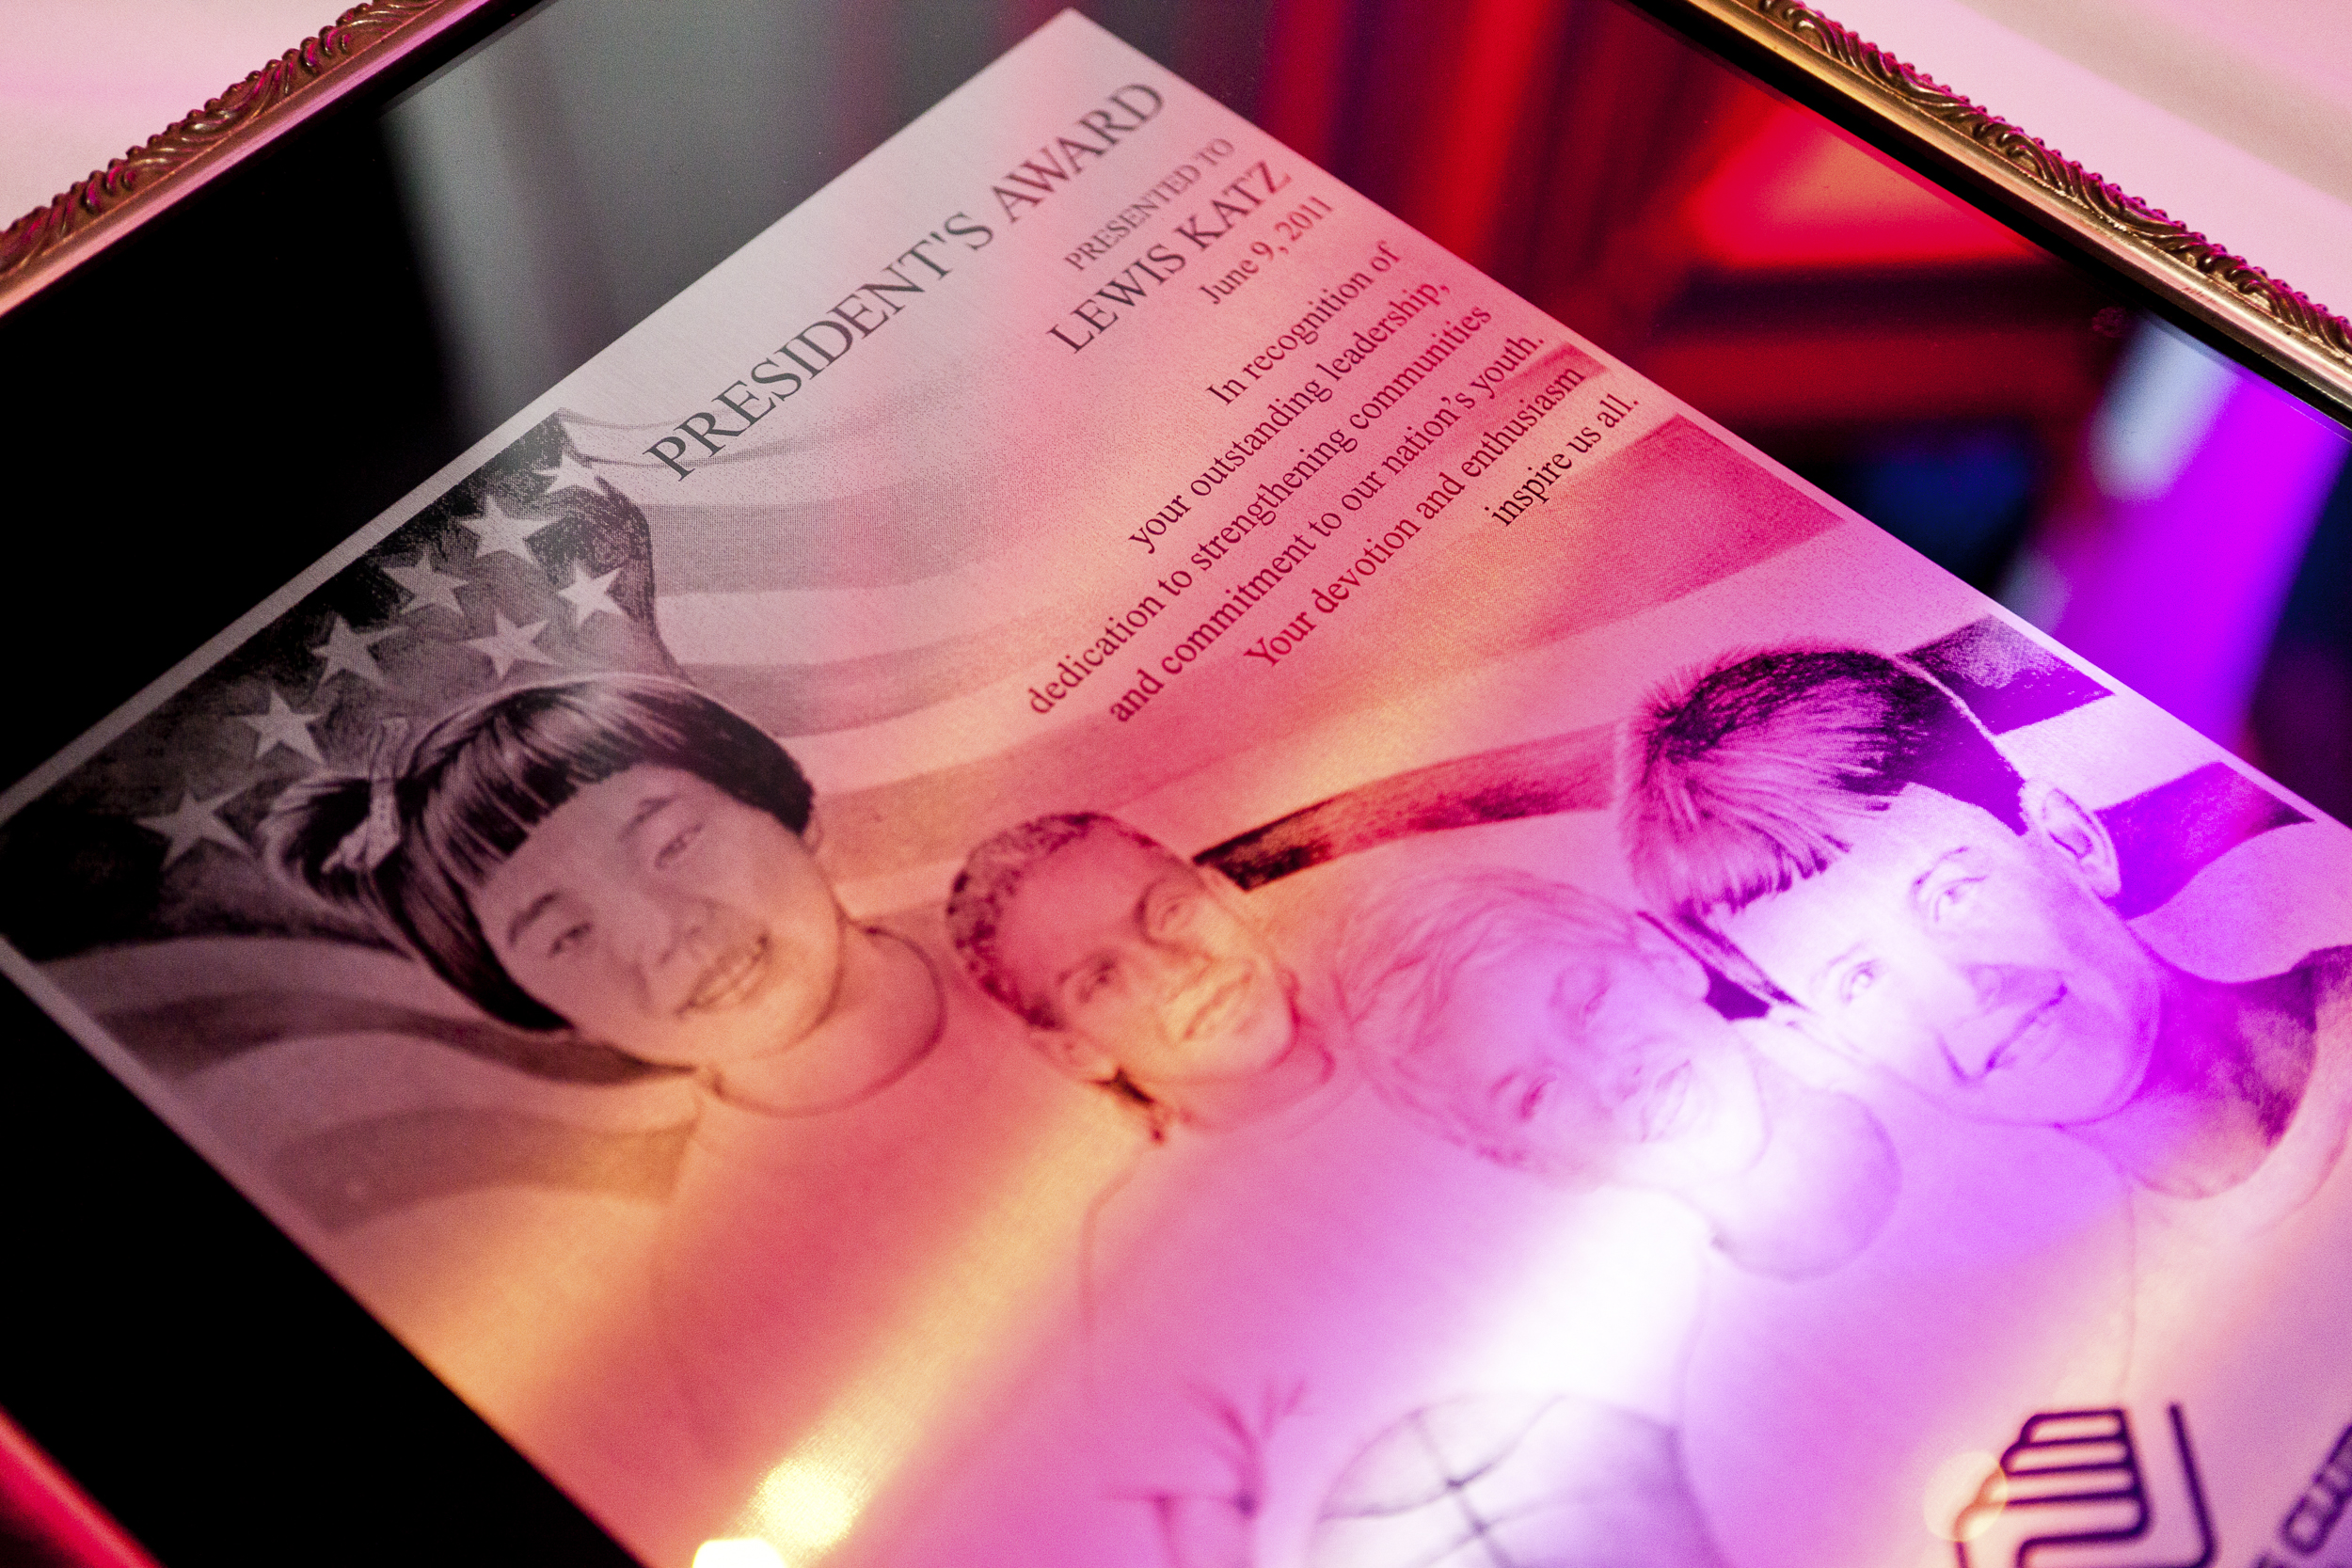 ceci-new-york-gives-back-boys-and-girls-club-of-america-great-futures-gala-2011-invitations-party-decor-museum-of-natural-history-event--6.jpg